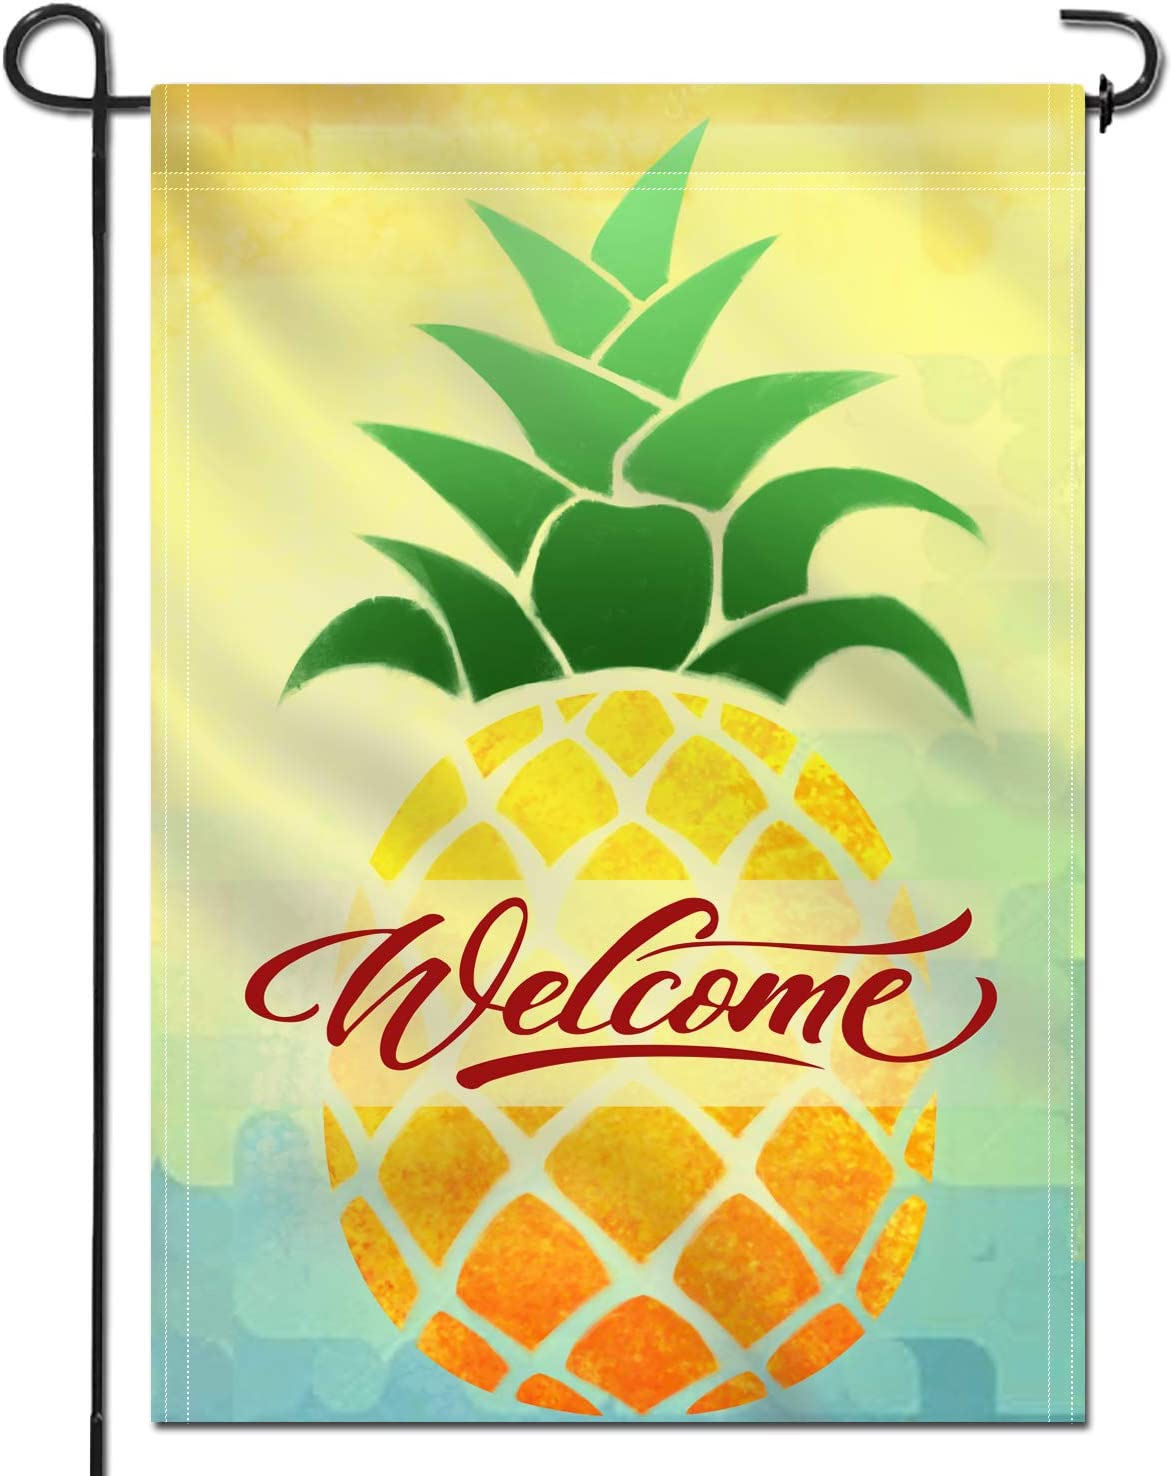 Anley Double Sided Garden Flag - Cartoon Pineapple Welcome Decorative Spring Summer Garden Flags - Weather Resistant & Double Stitched - 18 x 12.5 Inch